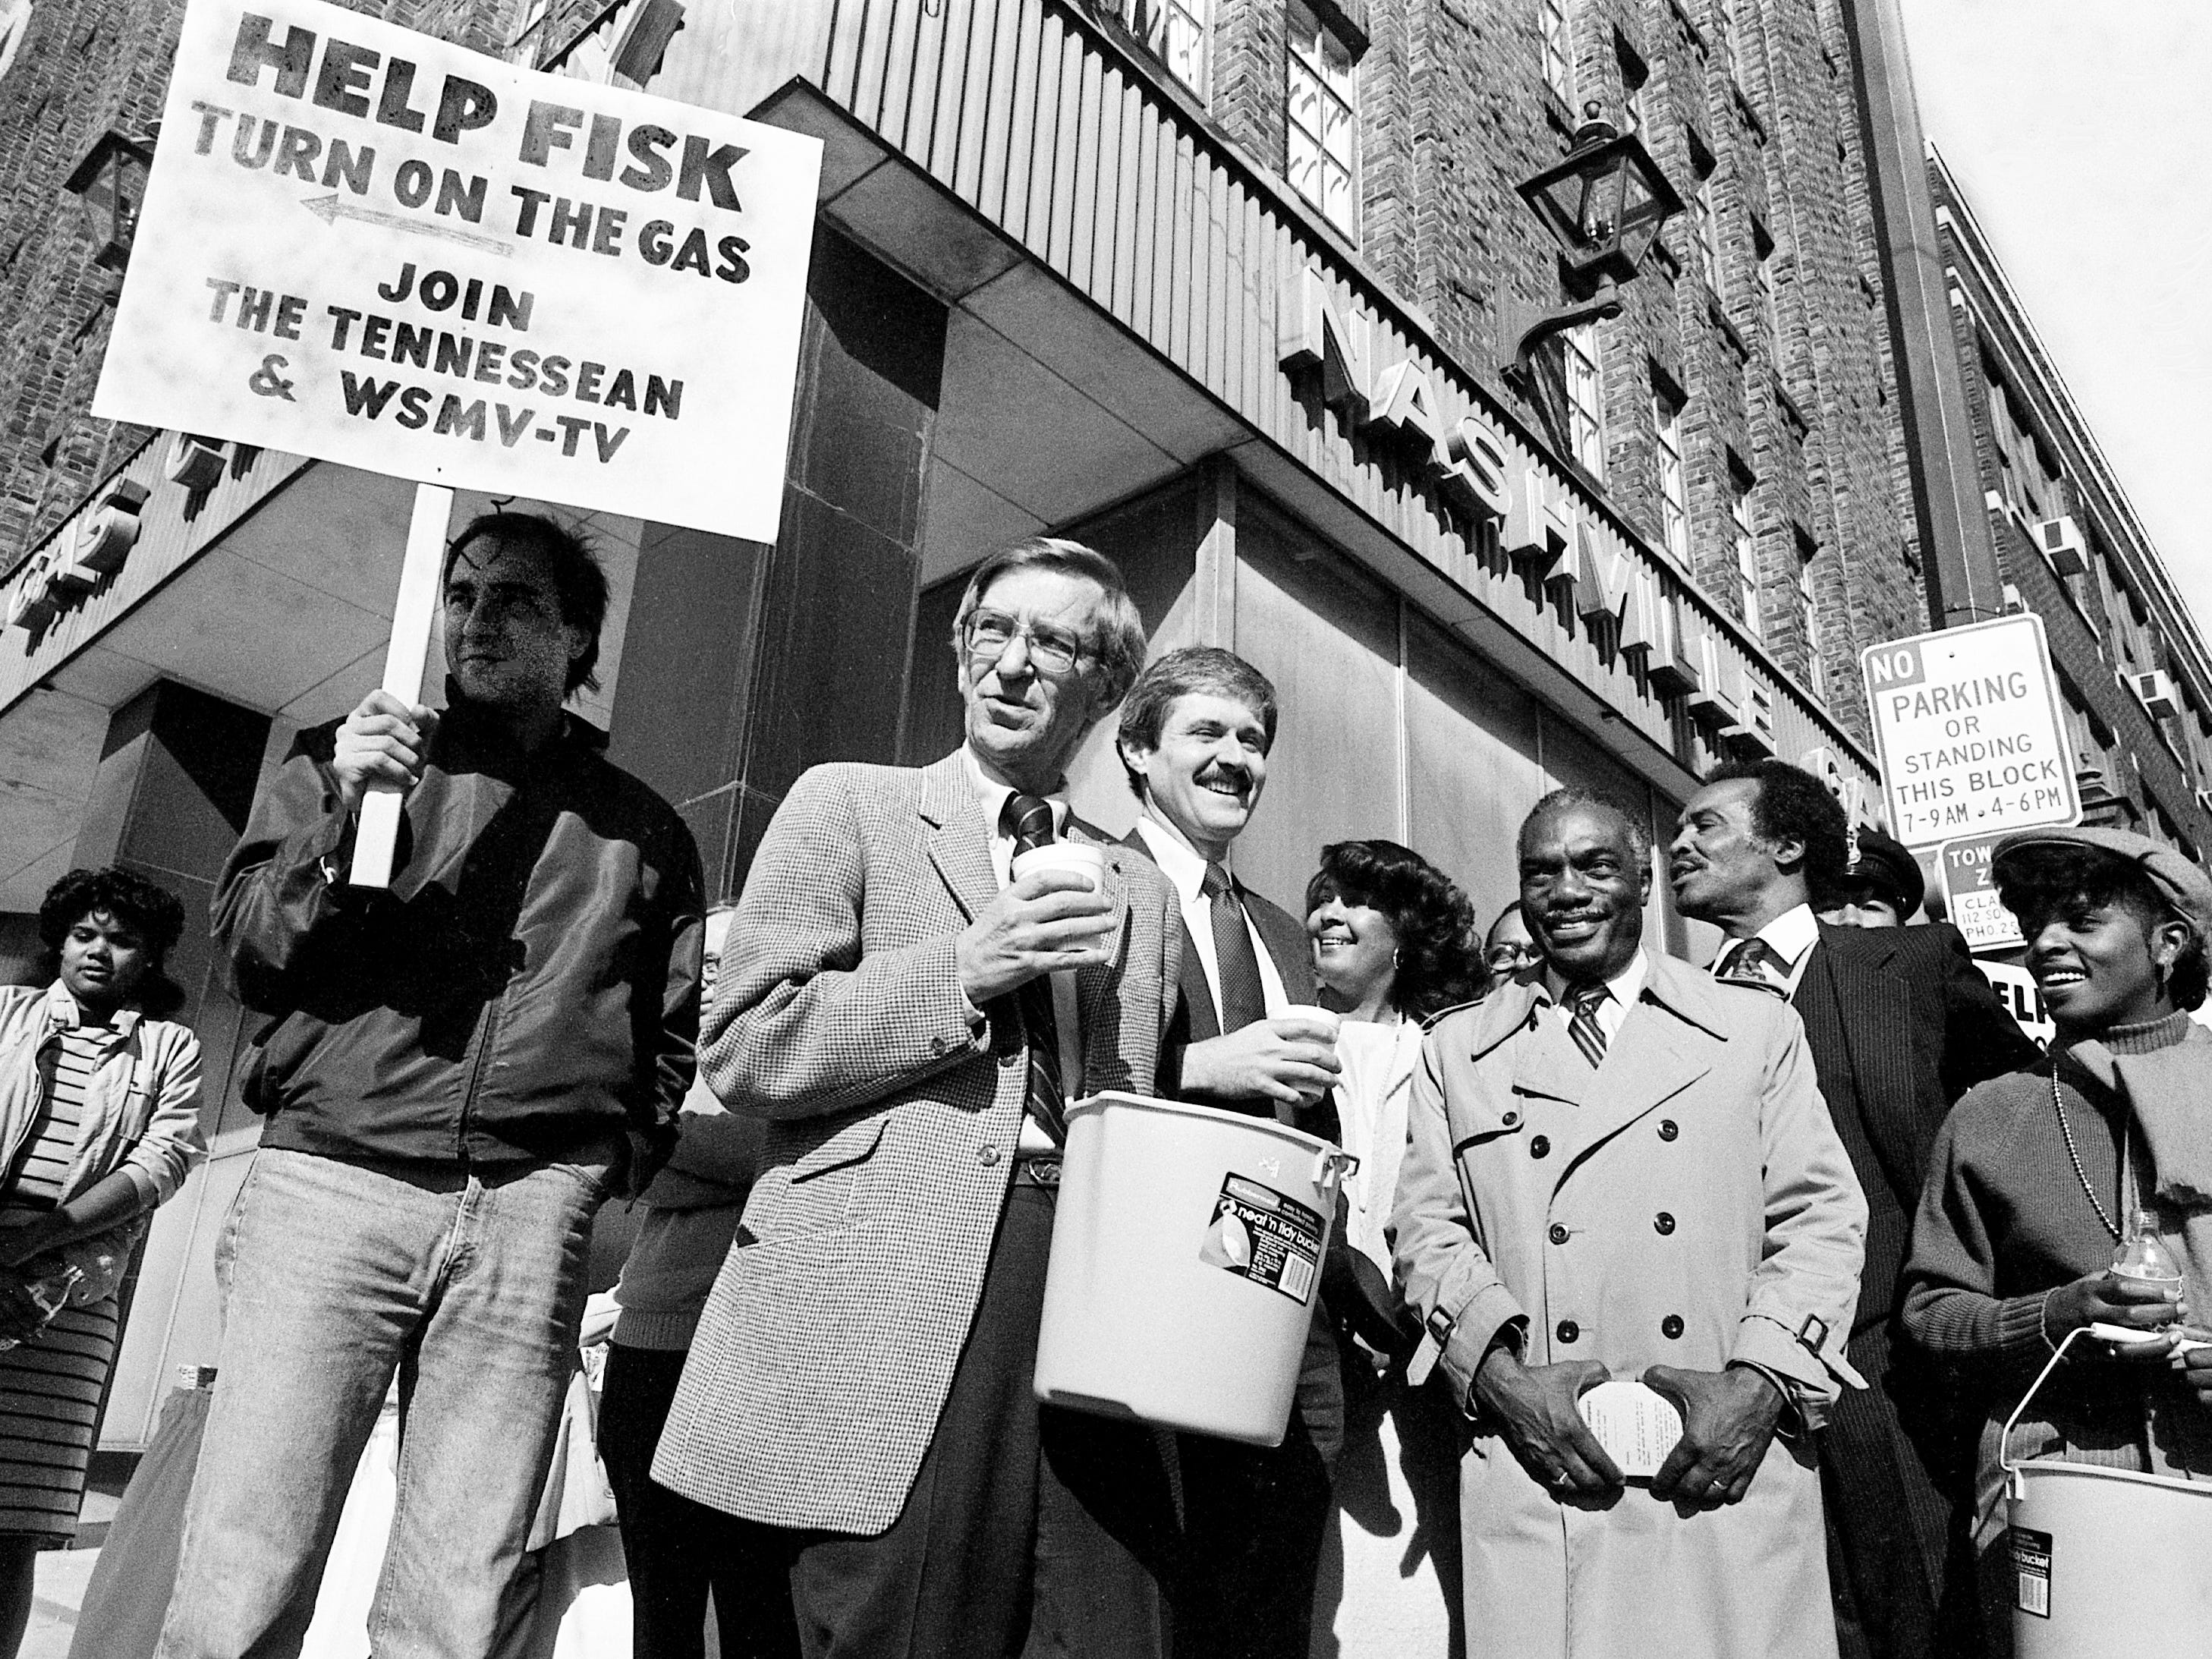 "The fundraising drive to ""turn on the gas"" at Fisk University brought people from a variety of occupations to the Nashville Gas Co. offices Nov. 13, 1983. Among them are Randy Hilman, left, a Tennessean reporter who holds a sign seeking contributions from passing motorists; Lloyd Armour, executive editor of The Tennessean; Mike Kettenring, president and general manager of WSMV; Walter Leonard, president of Fisk; Walter Hunt, an aide to 5th District Rep. Bill Boner; and Mearl Purvis, director of community affairs for WSMV."